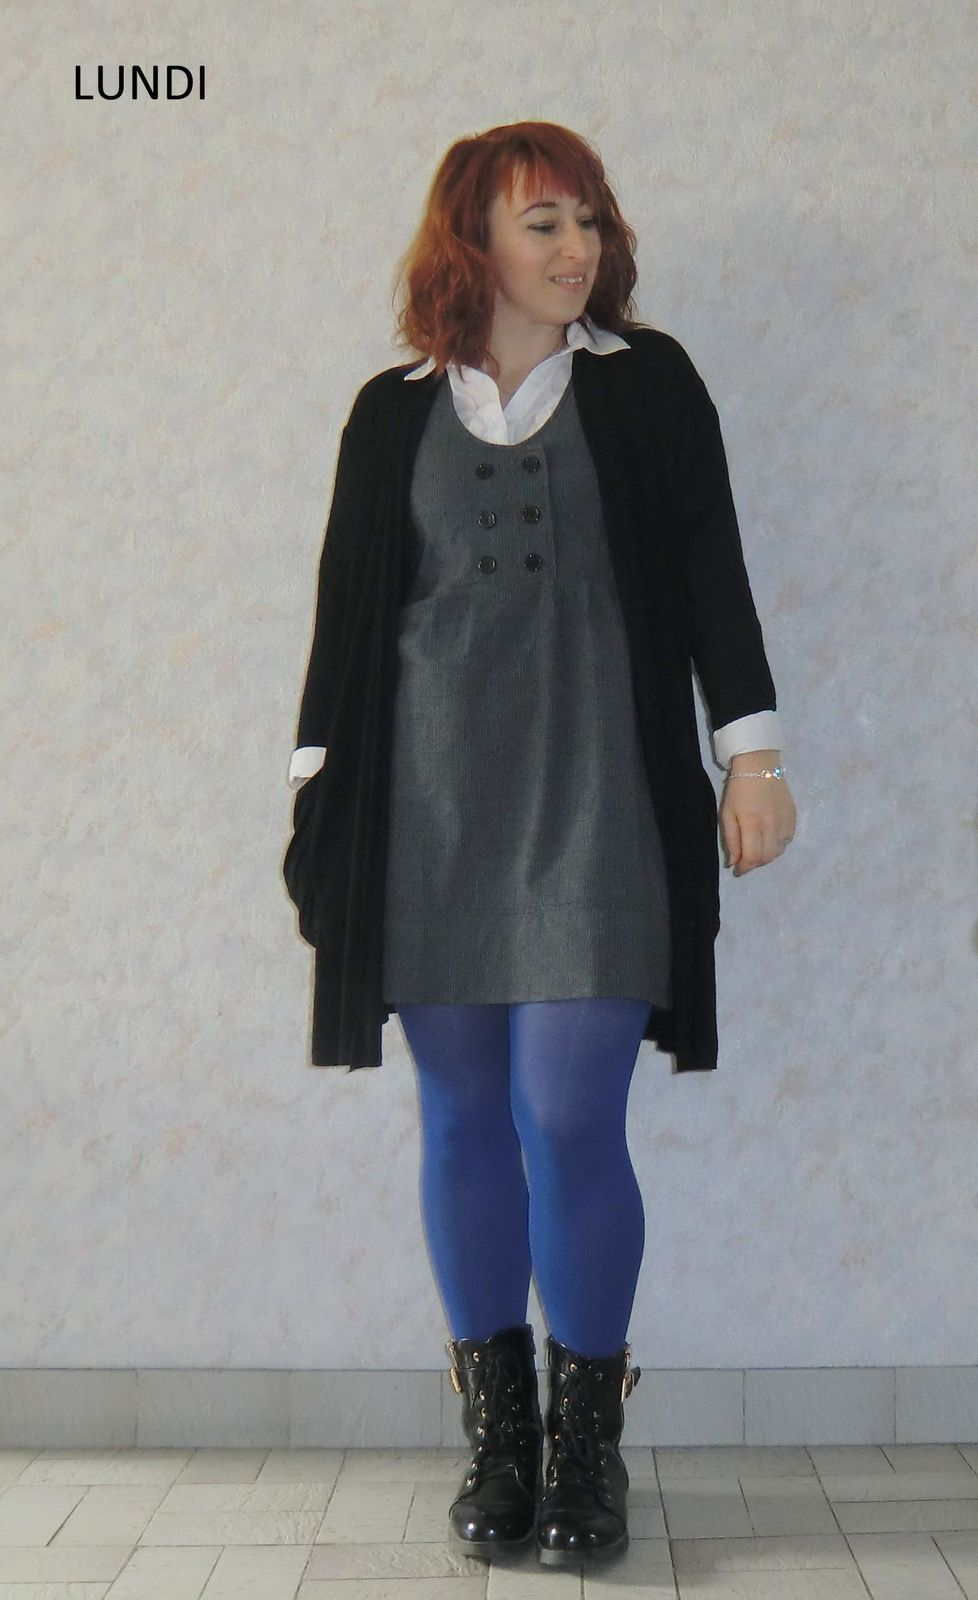 Chemise : Grain de Malice | Tunique : ? | Collant bleu : DIM | Veste & Bottines: BABOU | Bracelet : LOUISE ZOE